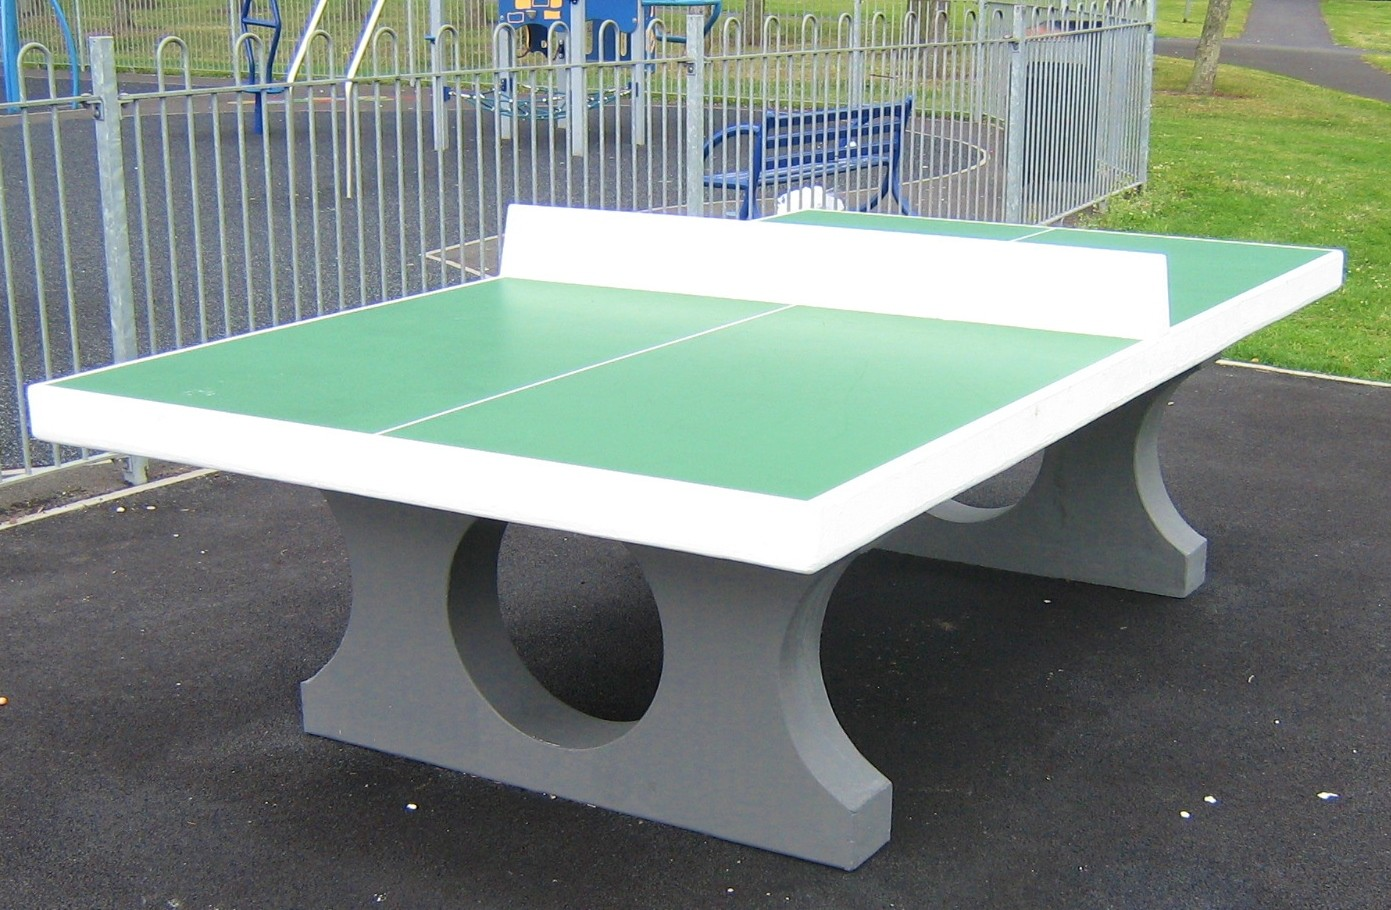 Concrete Table Tennis Table Streetscape Products Amp Services